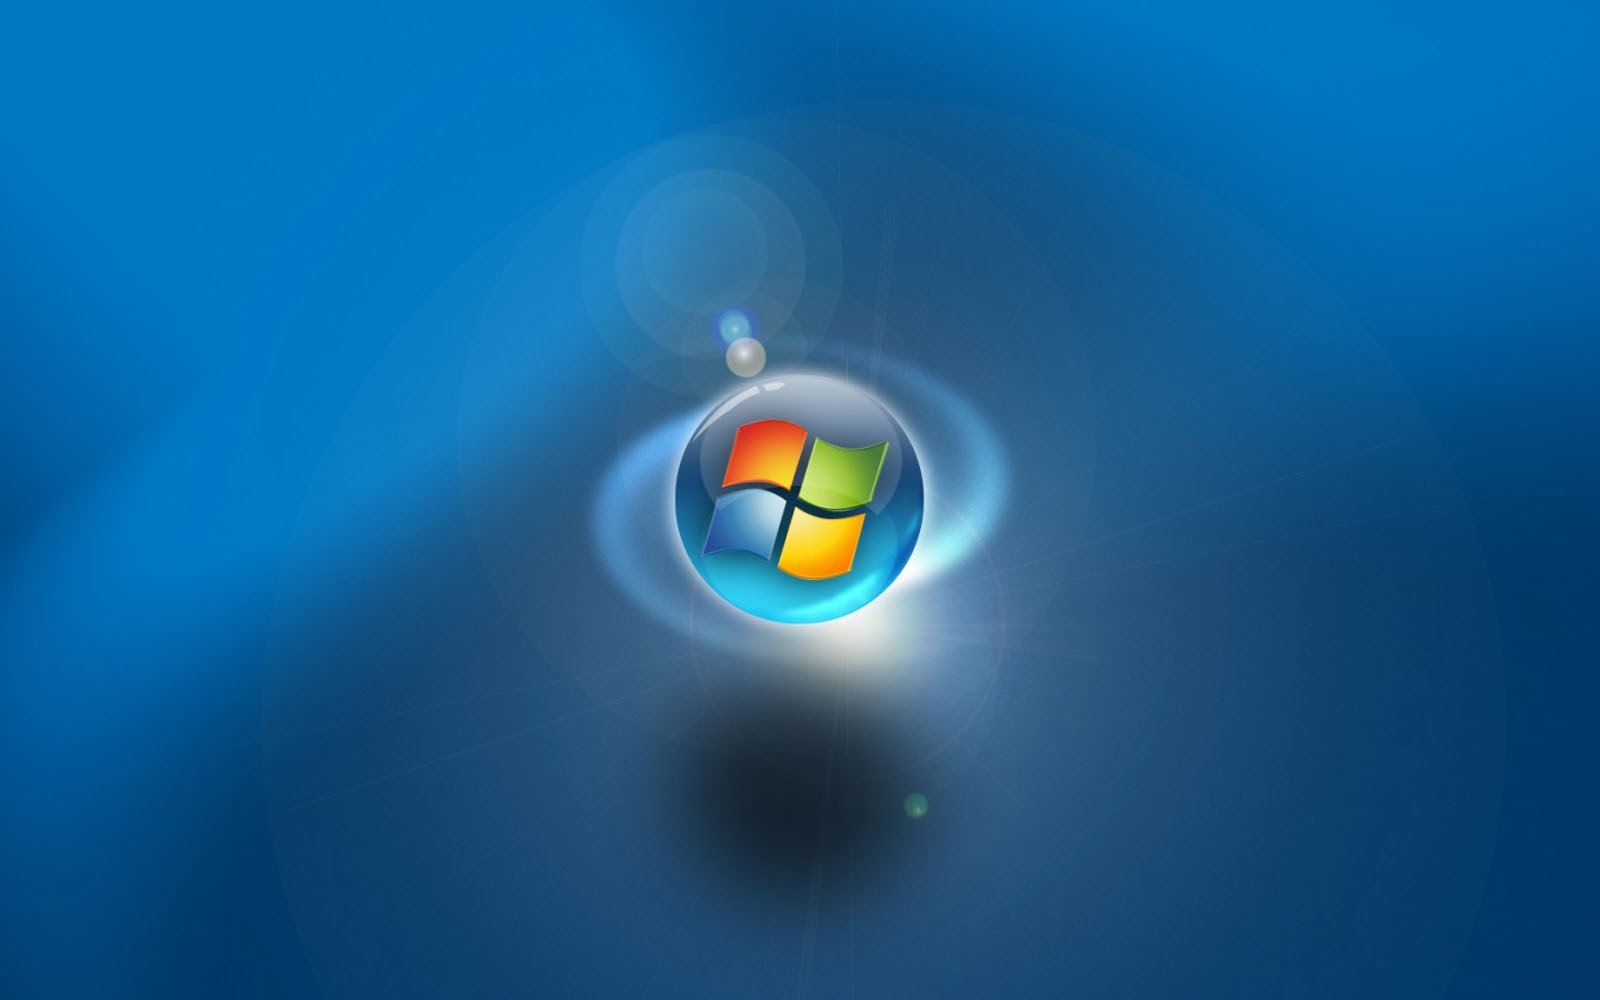 microsoft windows wallpapers by gifteddeviant - photo #23